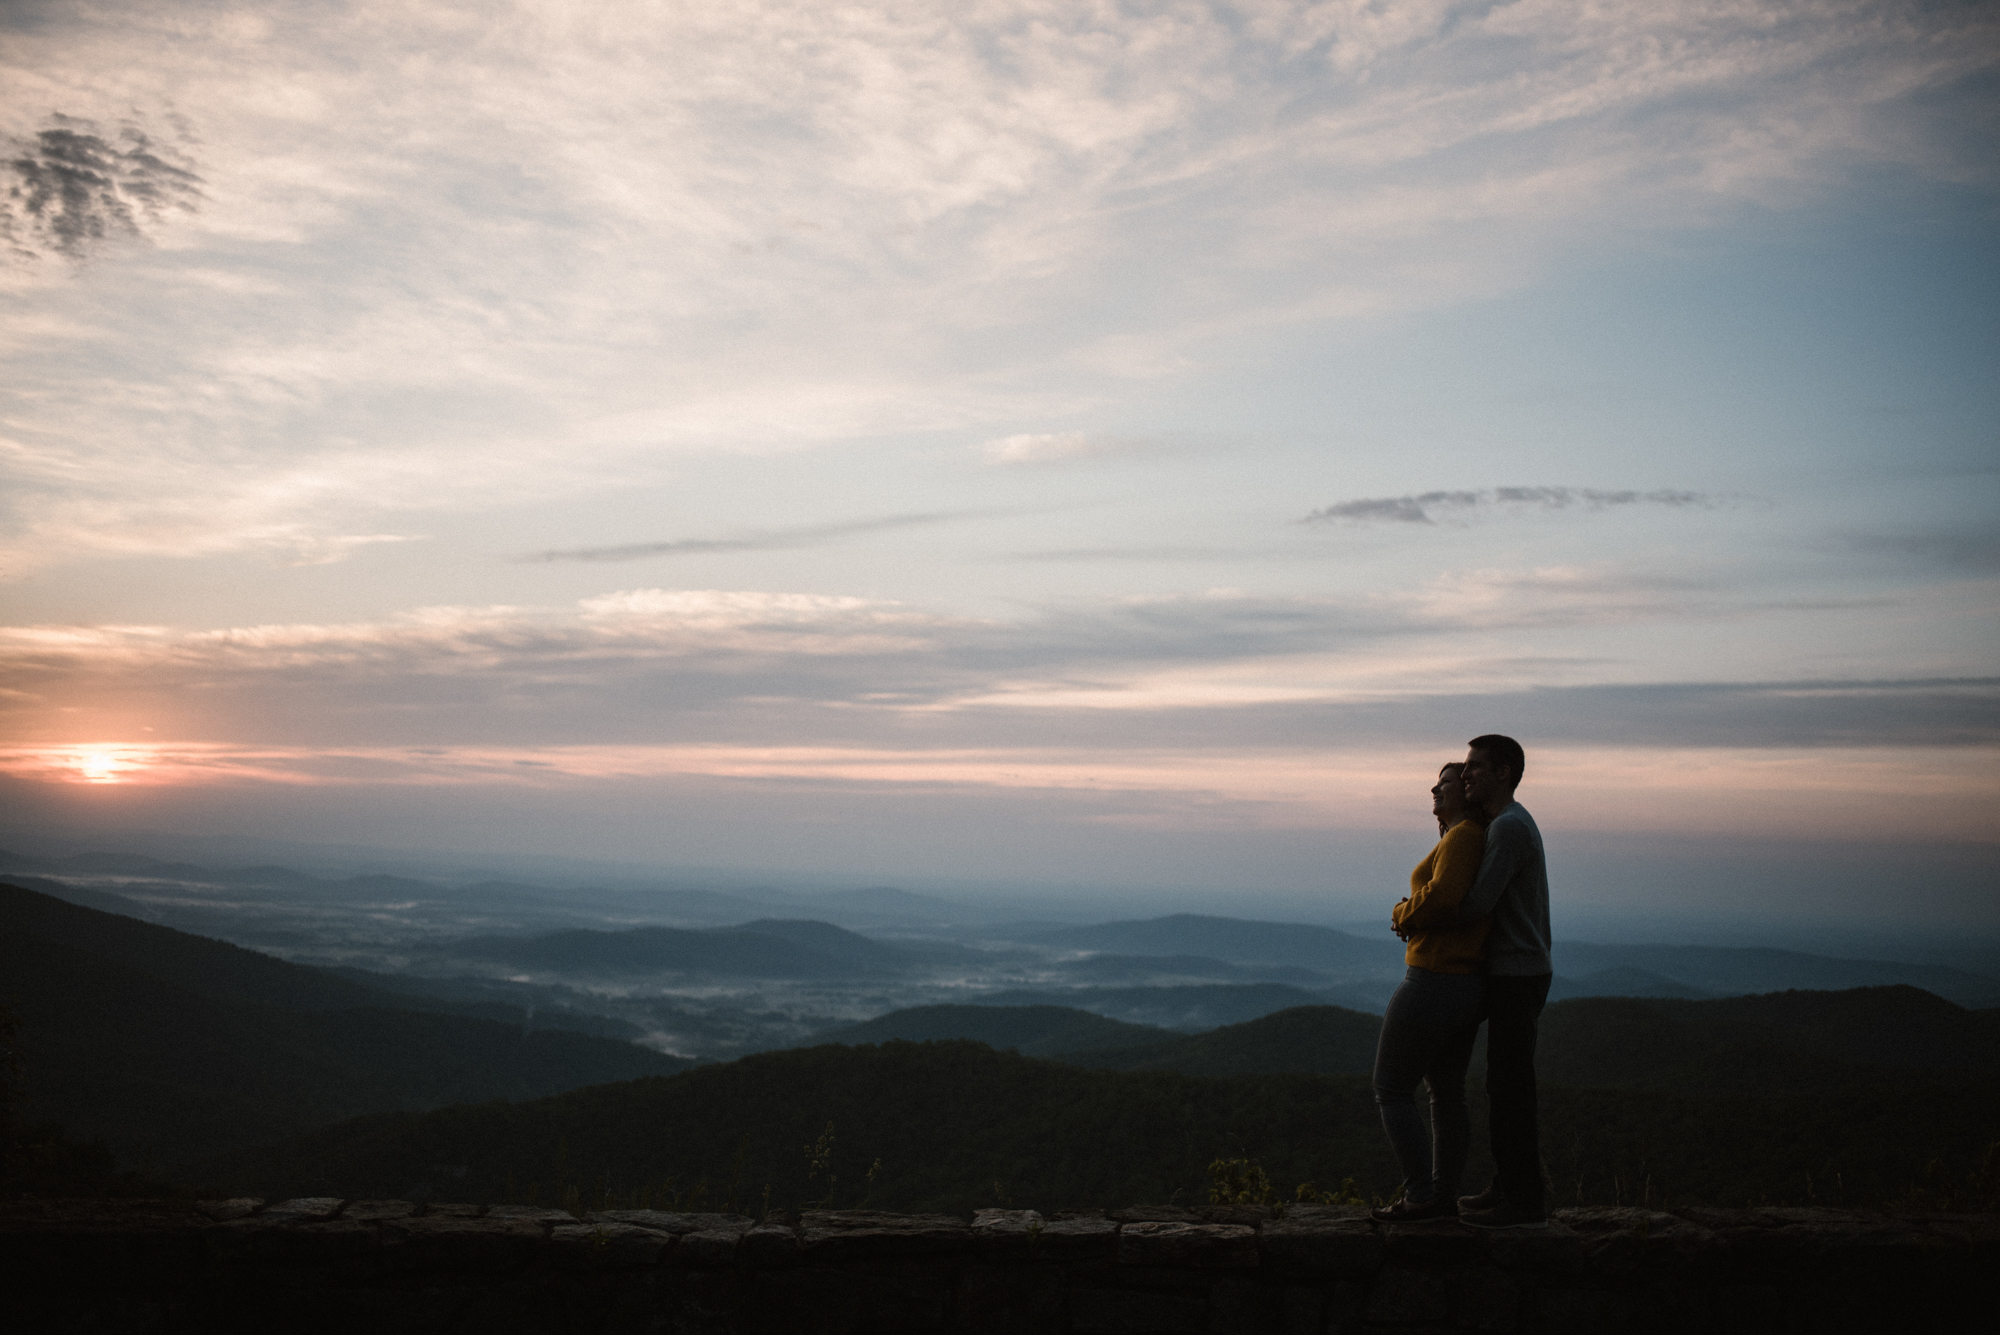 Sloane and Evan Sunrise Engagement Session in Shenandoah National Park - Things to Do in Luray Virginia - Adventurous Couple Photo Shoot White Sails Creative_1.jpg